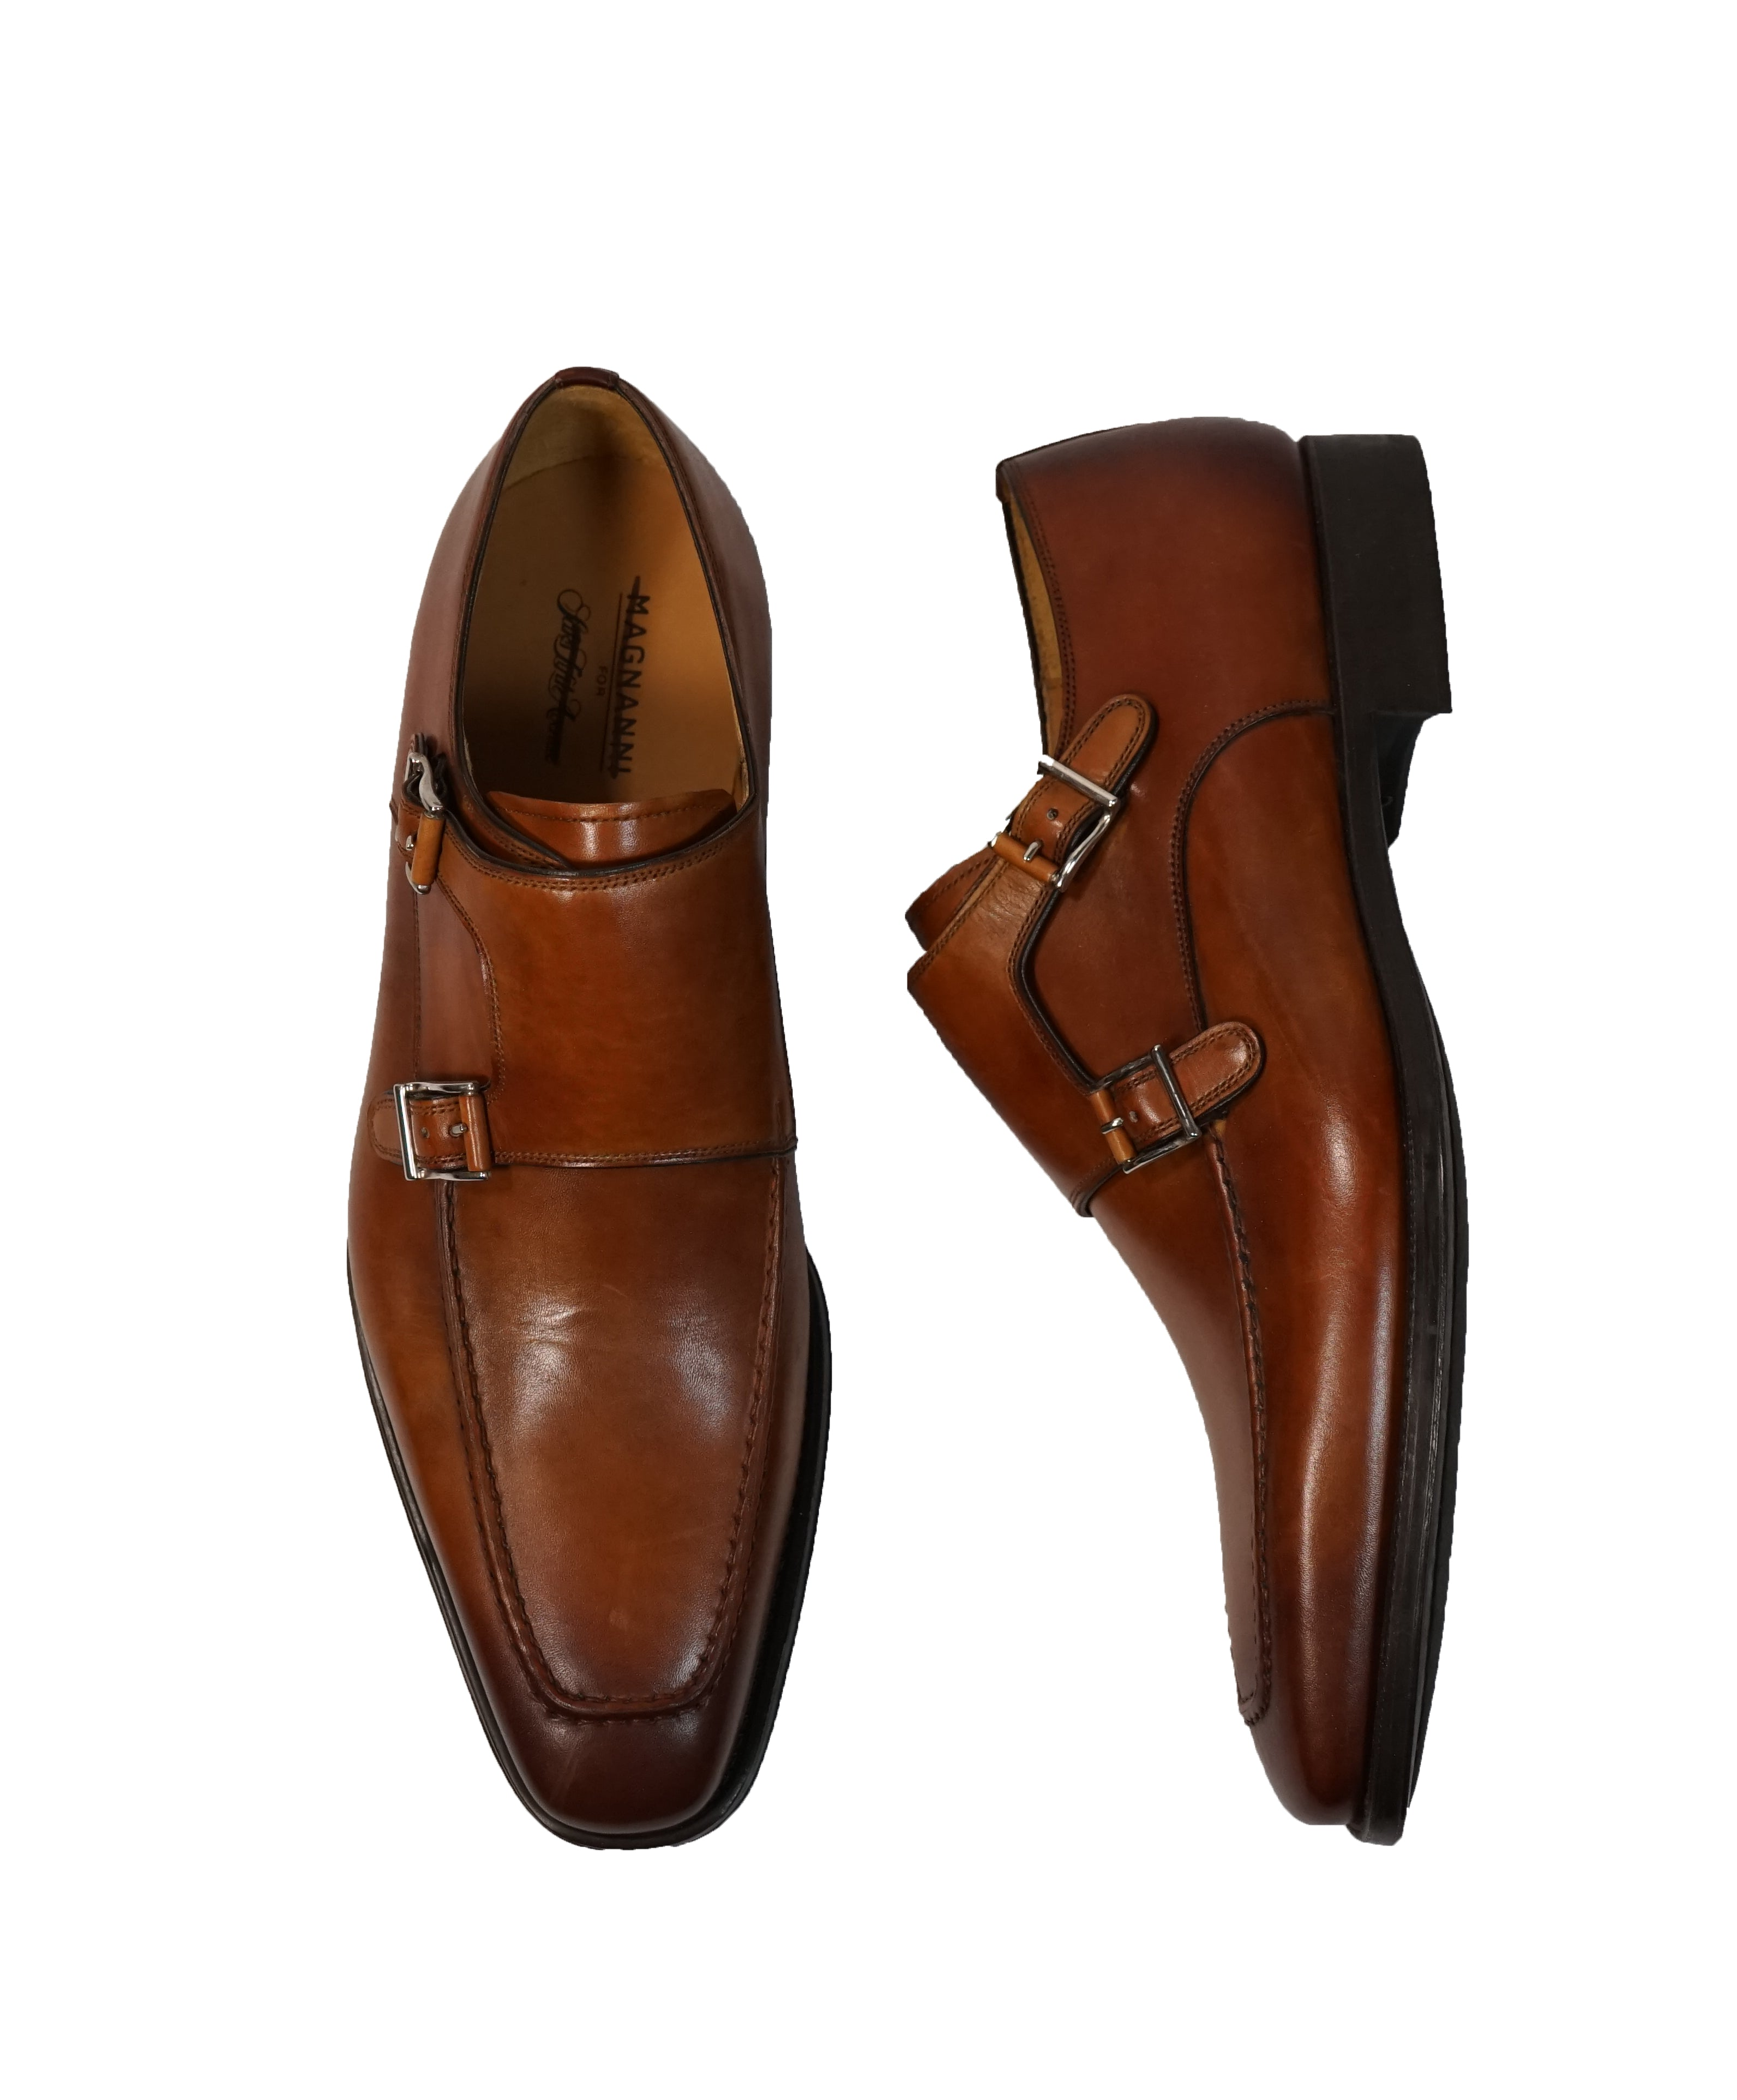 MAGNANNI FOR SFA - Double  Monk Strap Loafers - 10